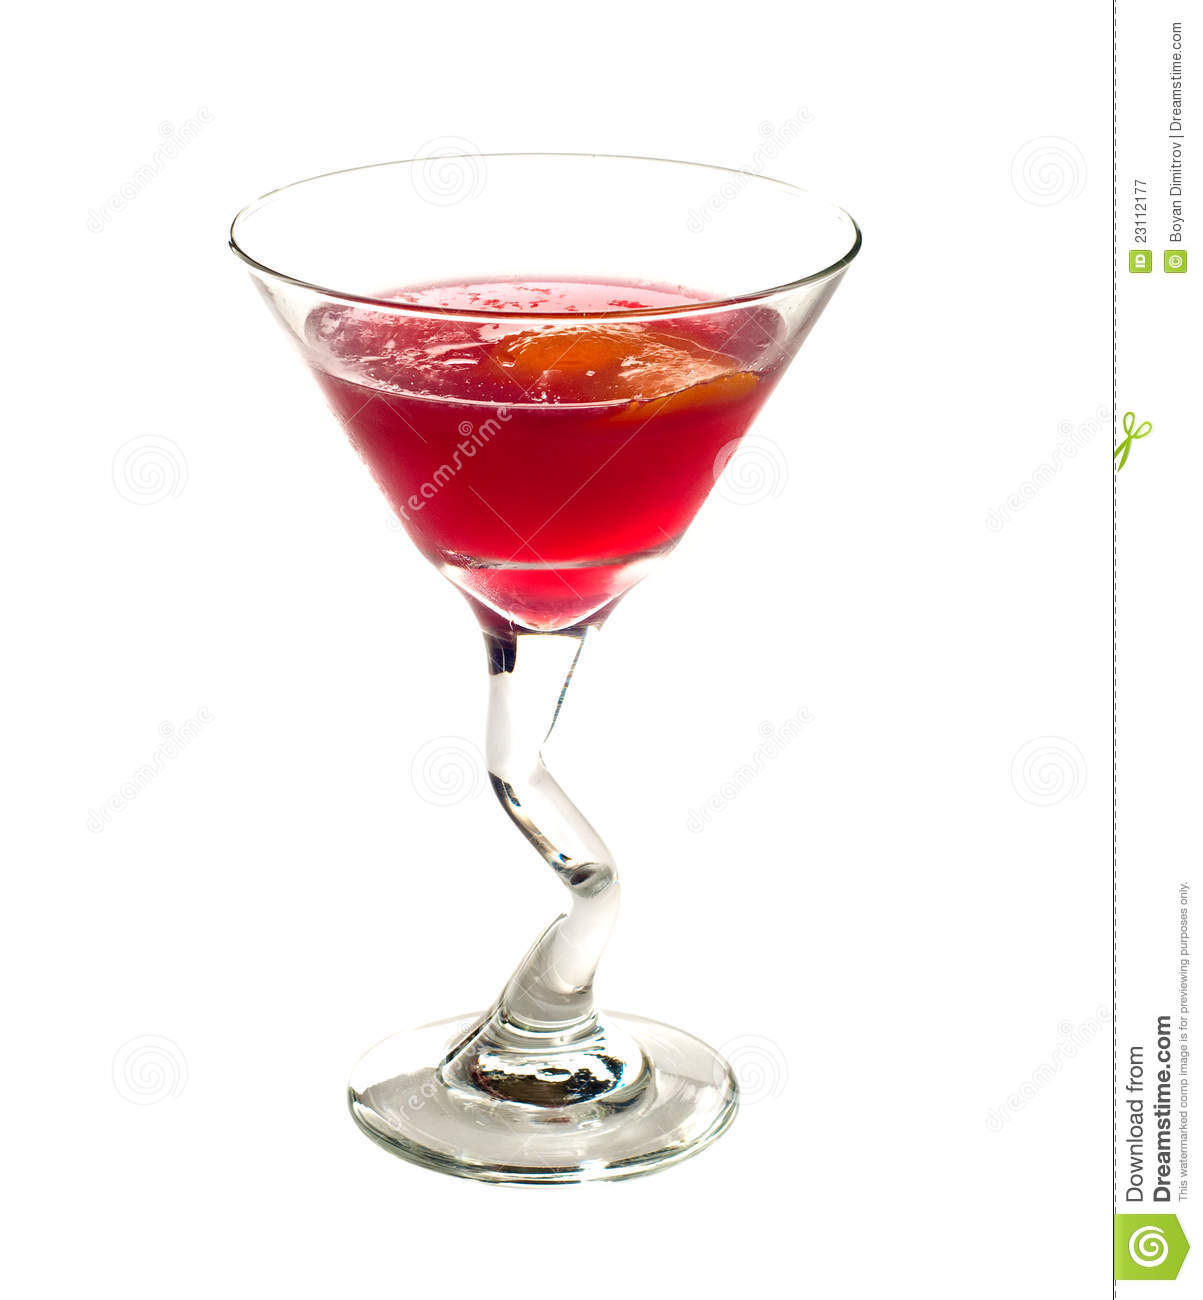 Classic Cosmopolitan Cocktail drink isolated on white background.